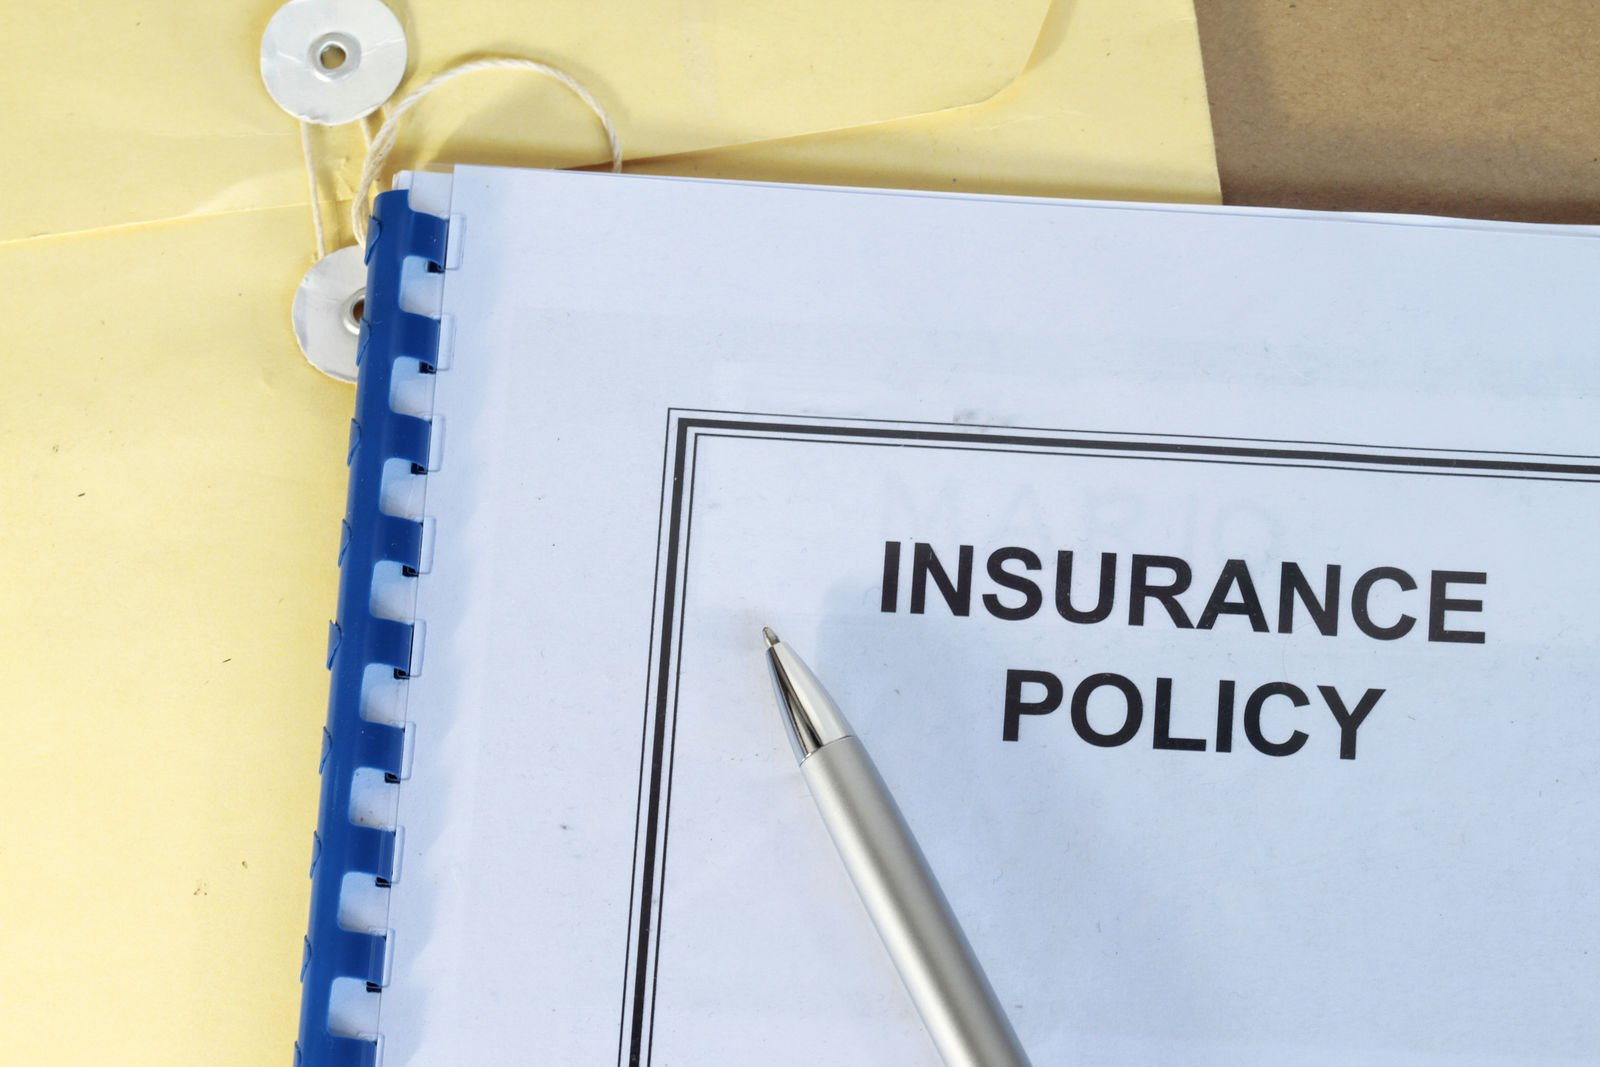 Does my auto insurance cover me driving for Curb?